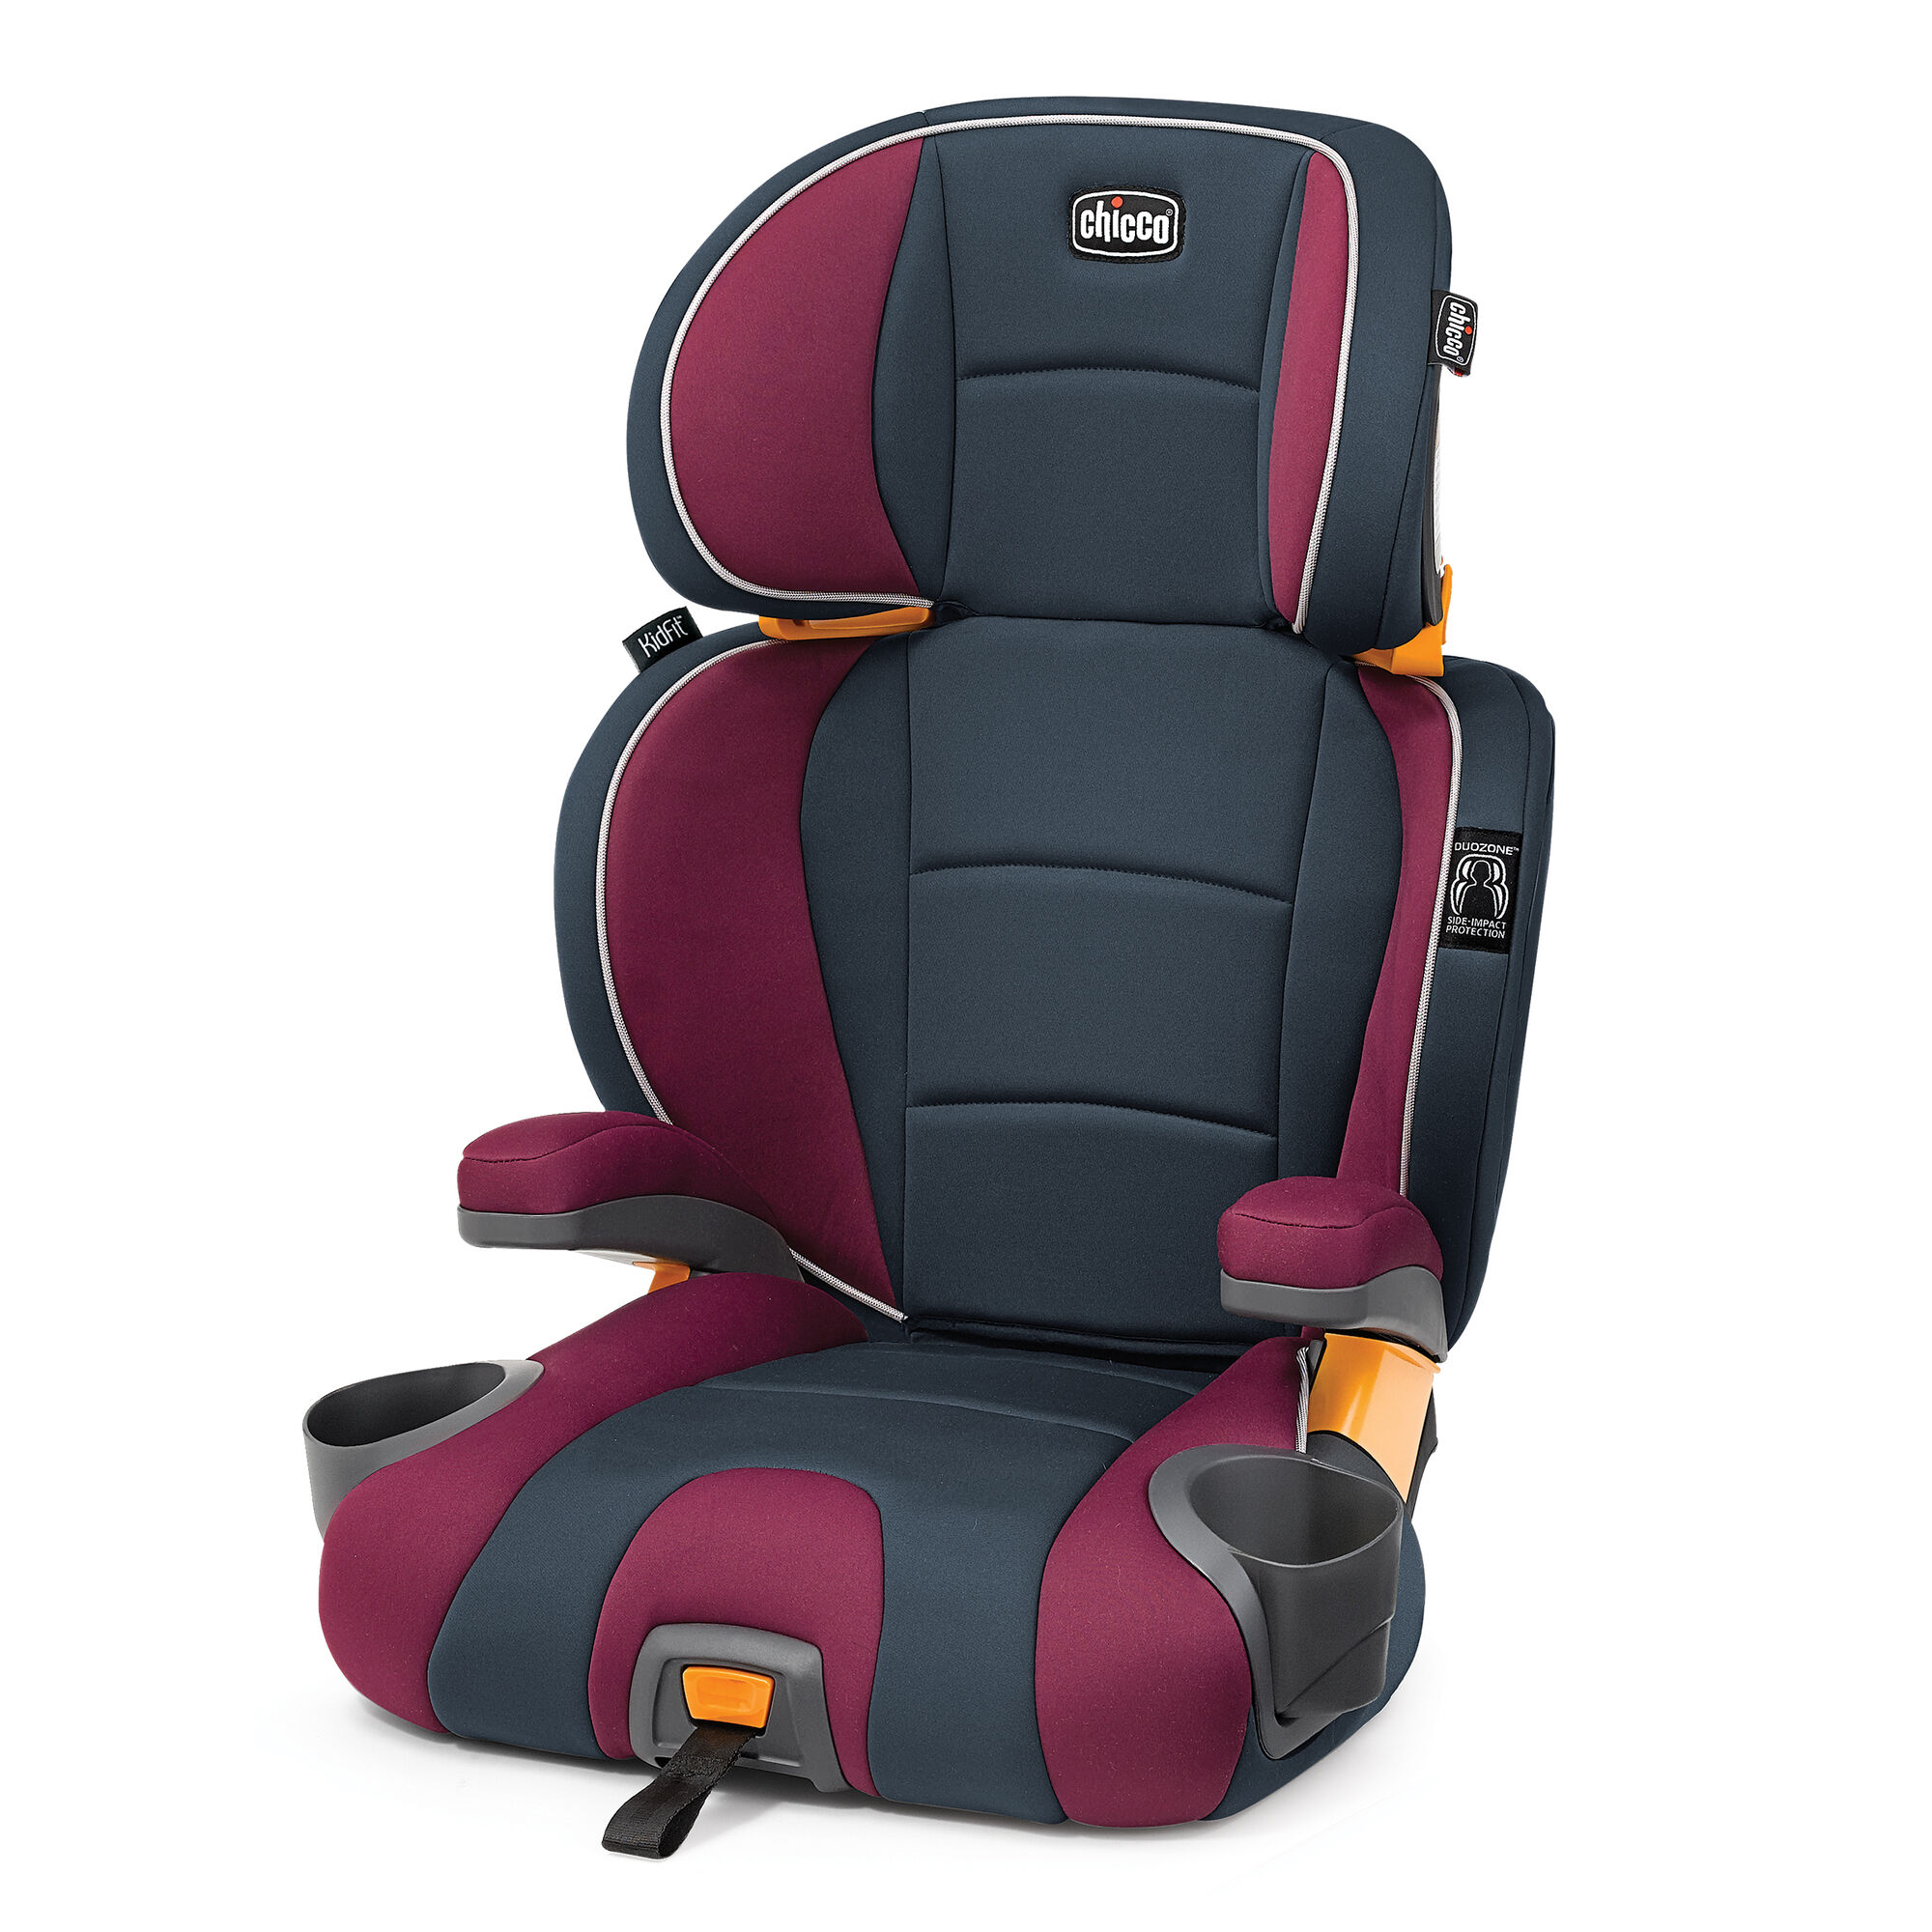 Vehicle Seats Product : Chicco kidfit in belt positioning booster seat amethyst